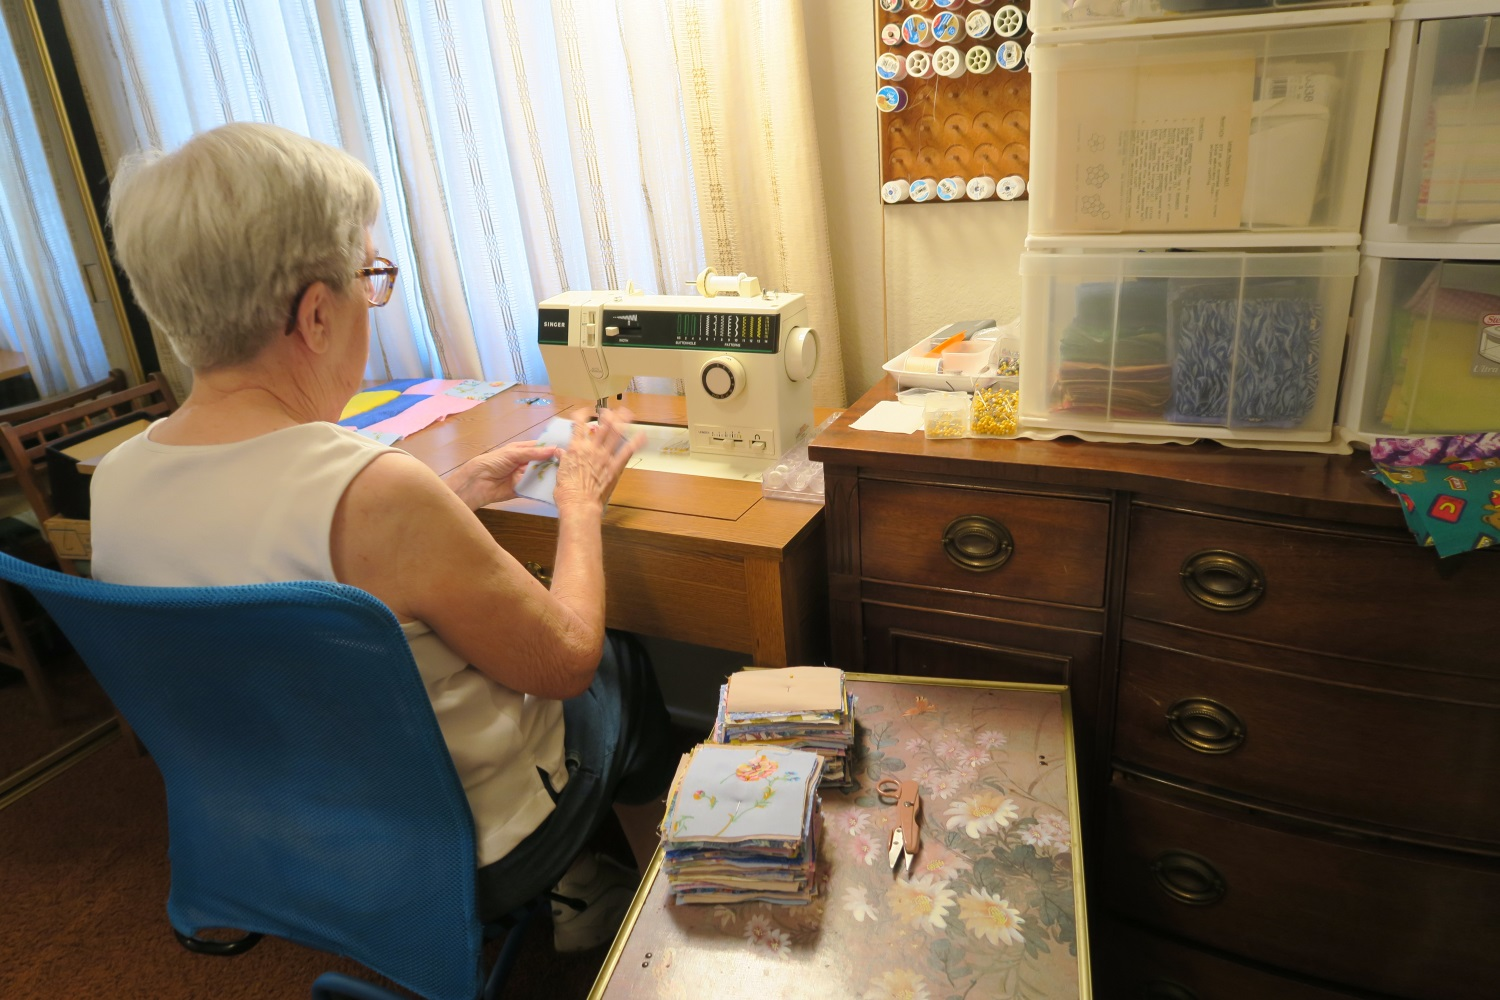 Fran in action - showing us where she puts the squares as she sews. There squares to the right of her sewing machine in those plastic drawers.